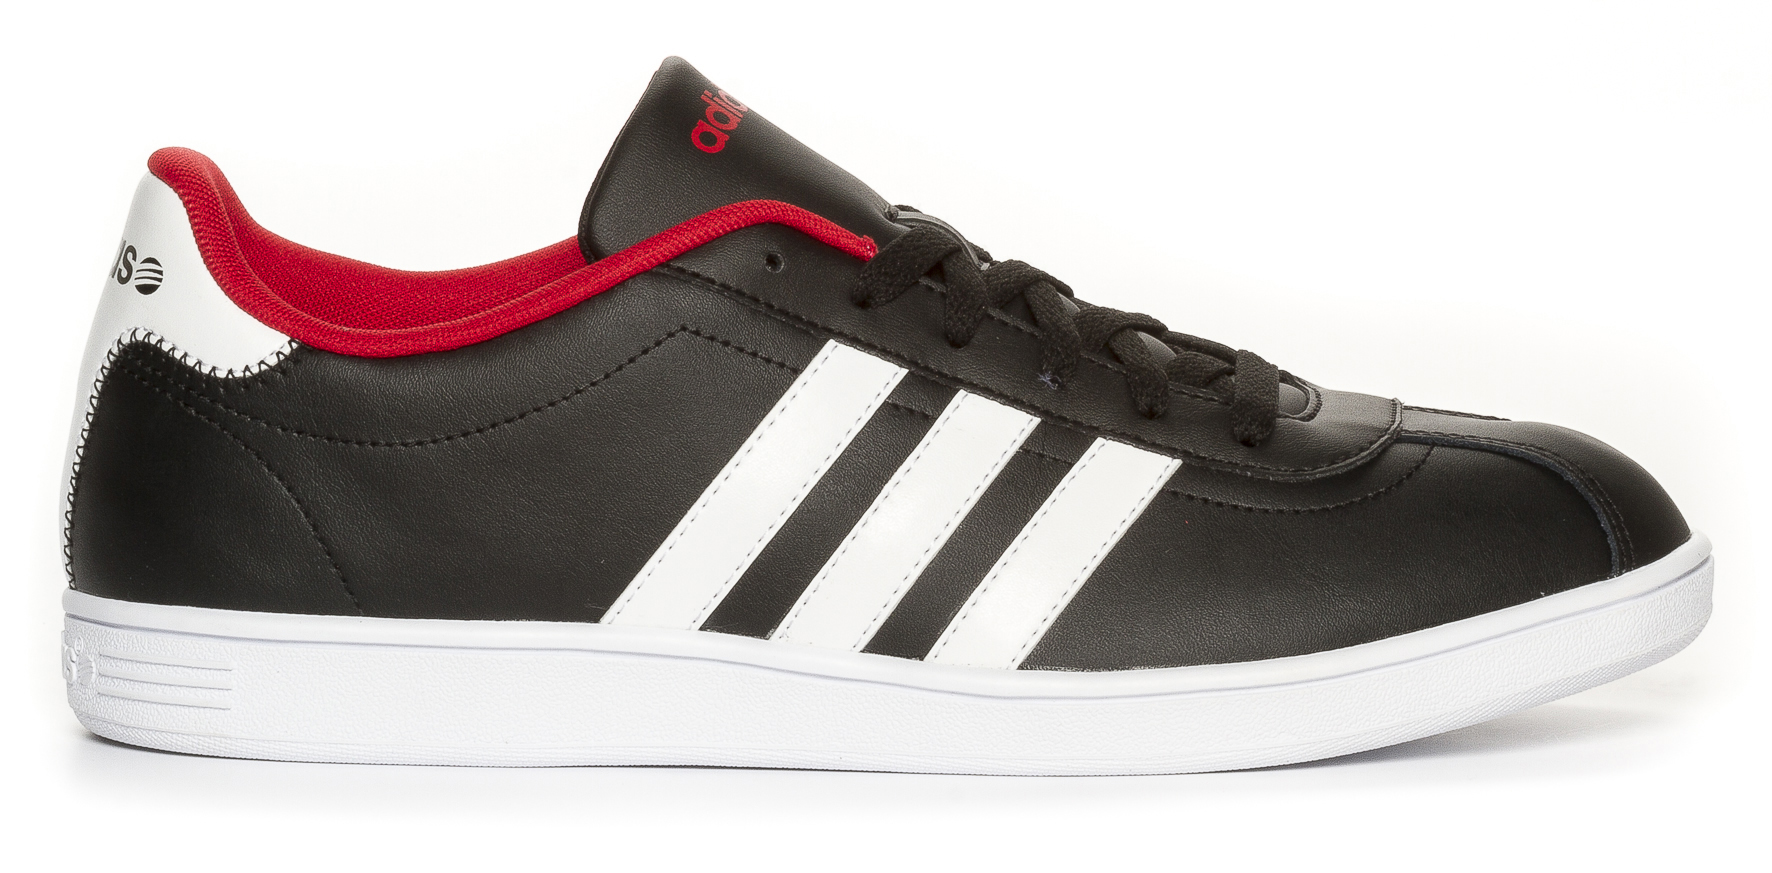 f9f7be86 ... discount code for adidas neo sneakers sort 285631 feetfirst.no 7d9e4  de673